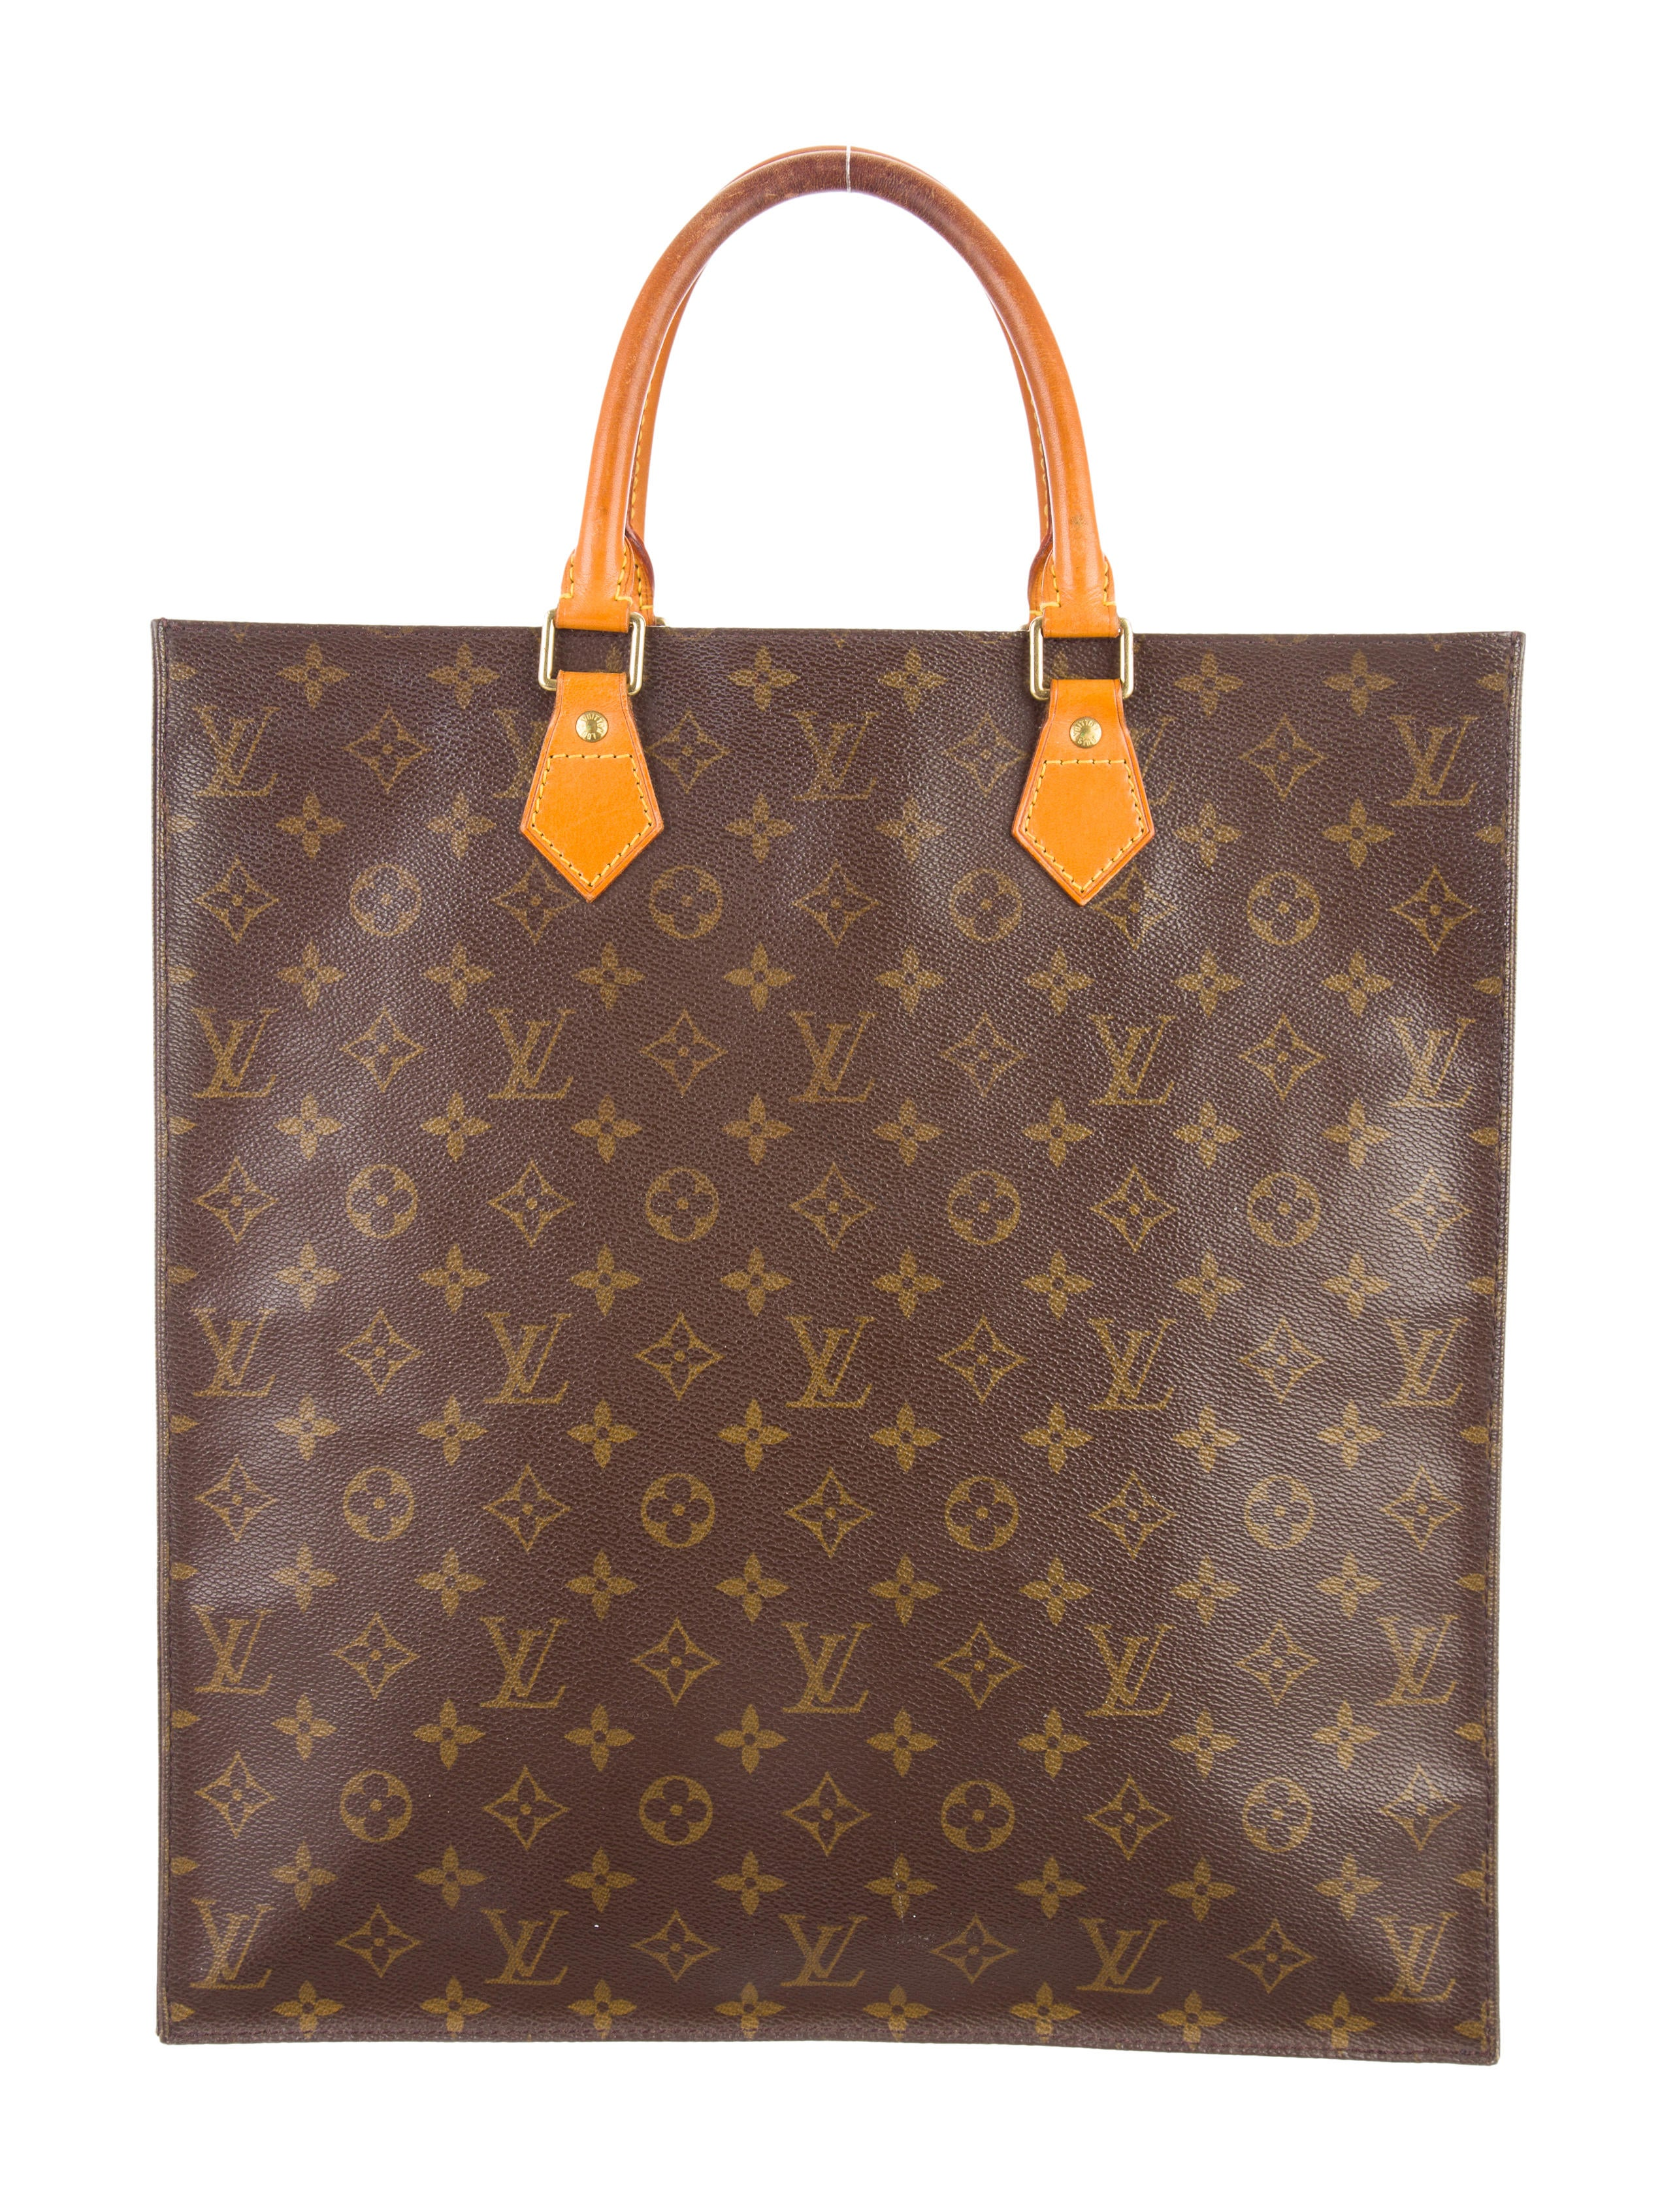 Louis vuitton monogram sac plat handbags lou125975 for Louis vuitton monogram miroir sac plat